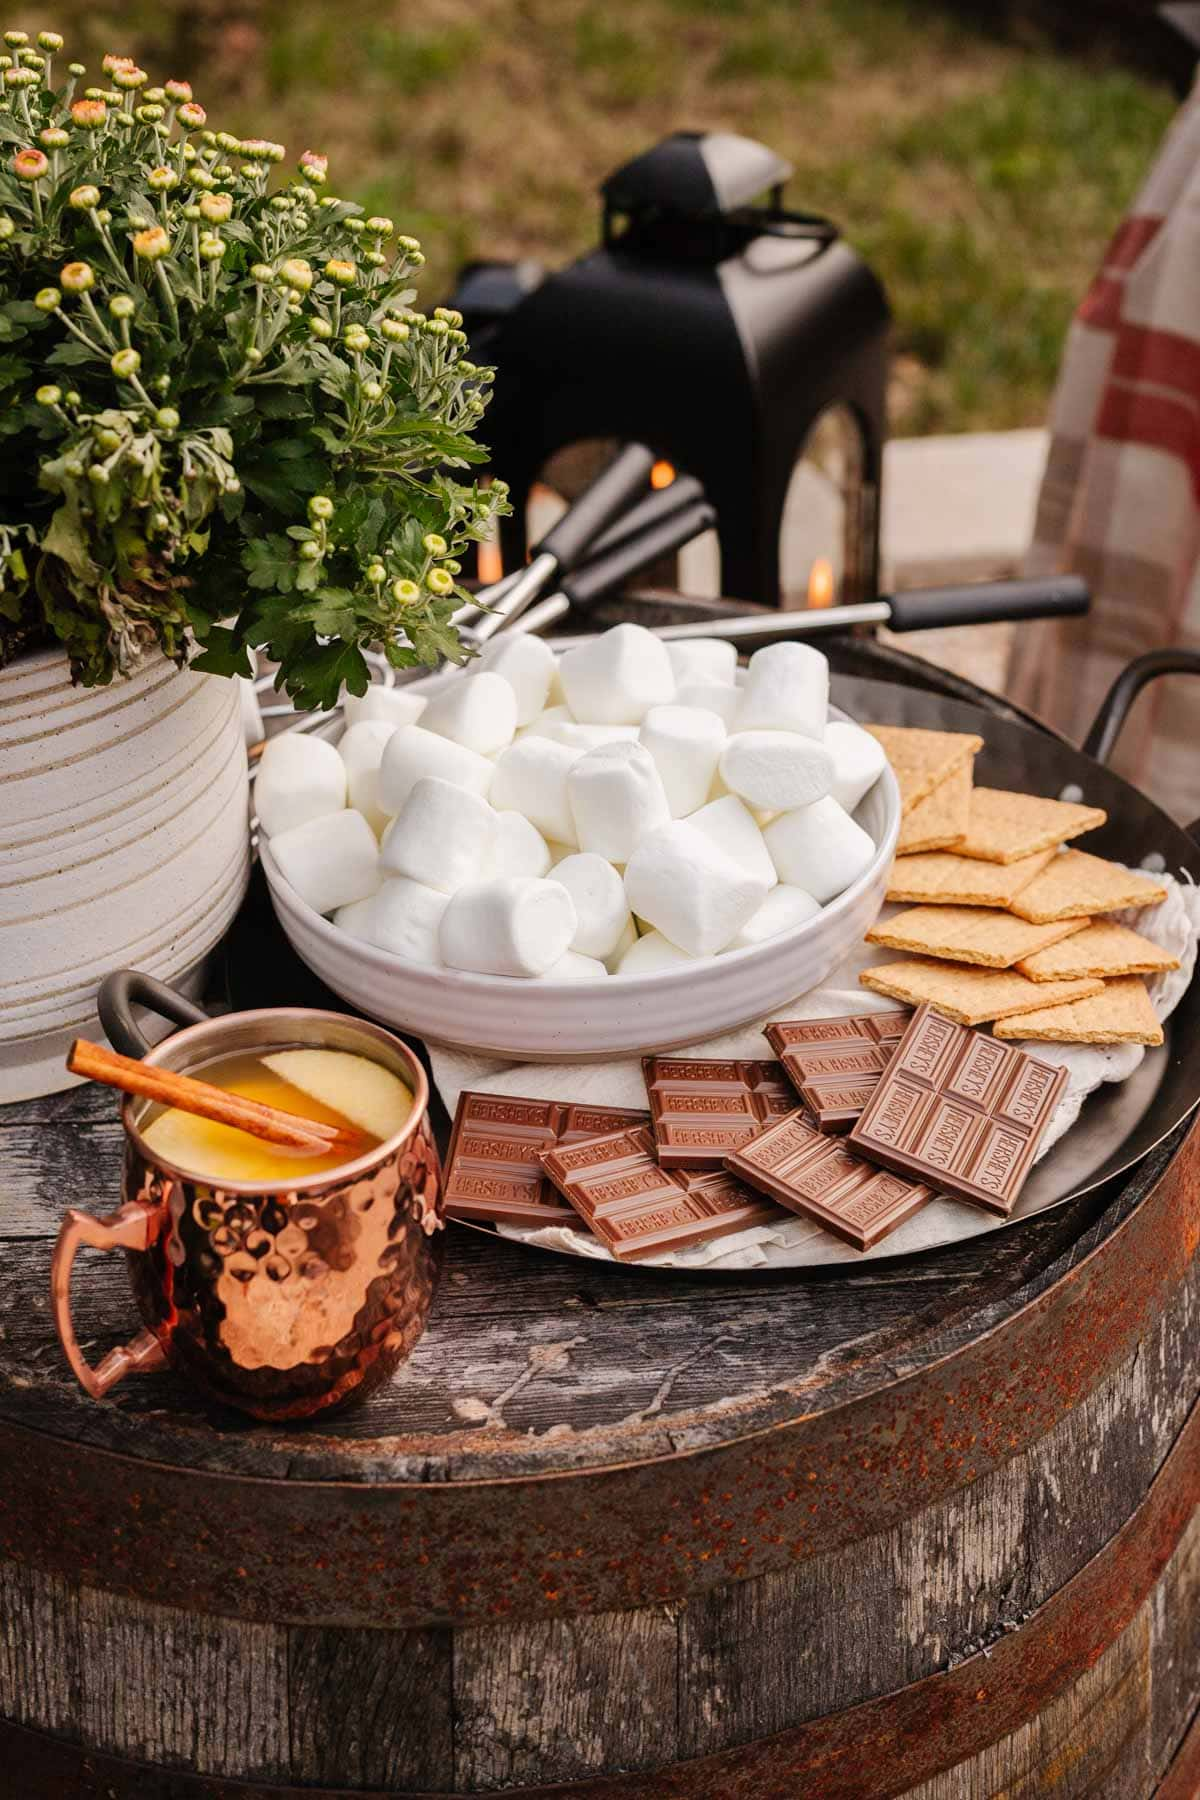 s'mores station at backyard party for fire pit idea